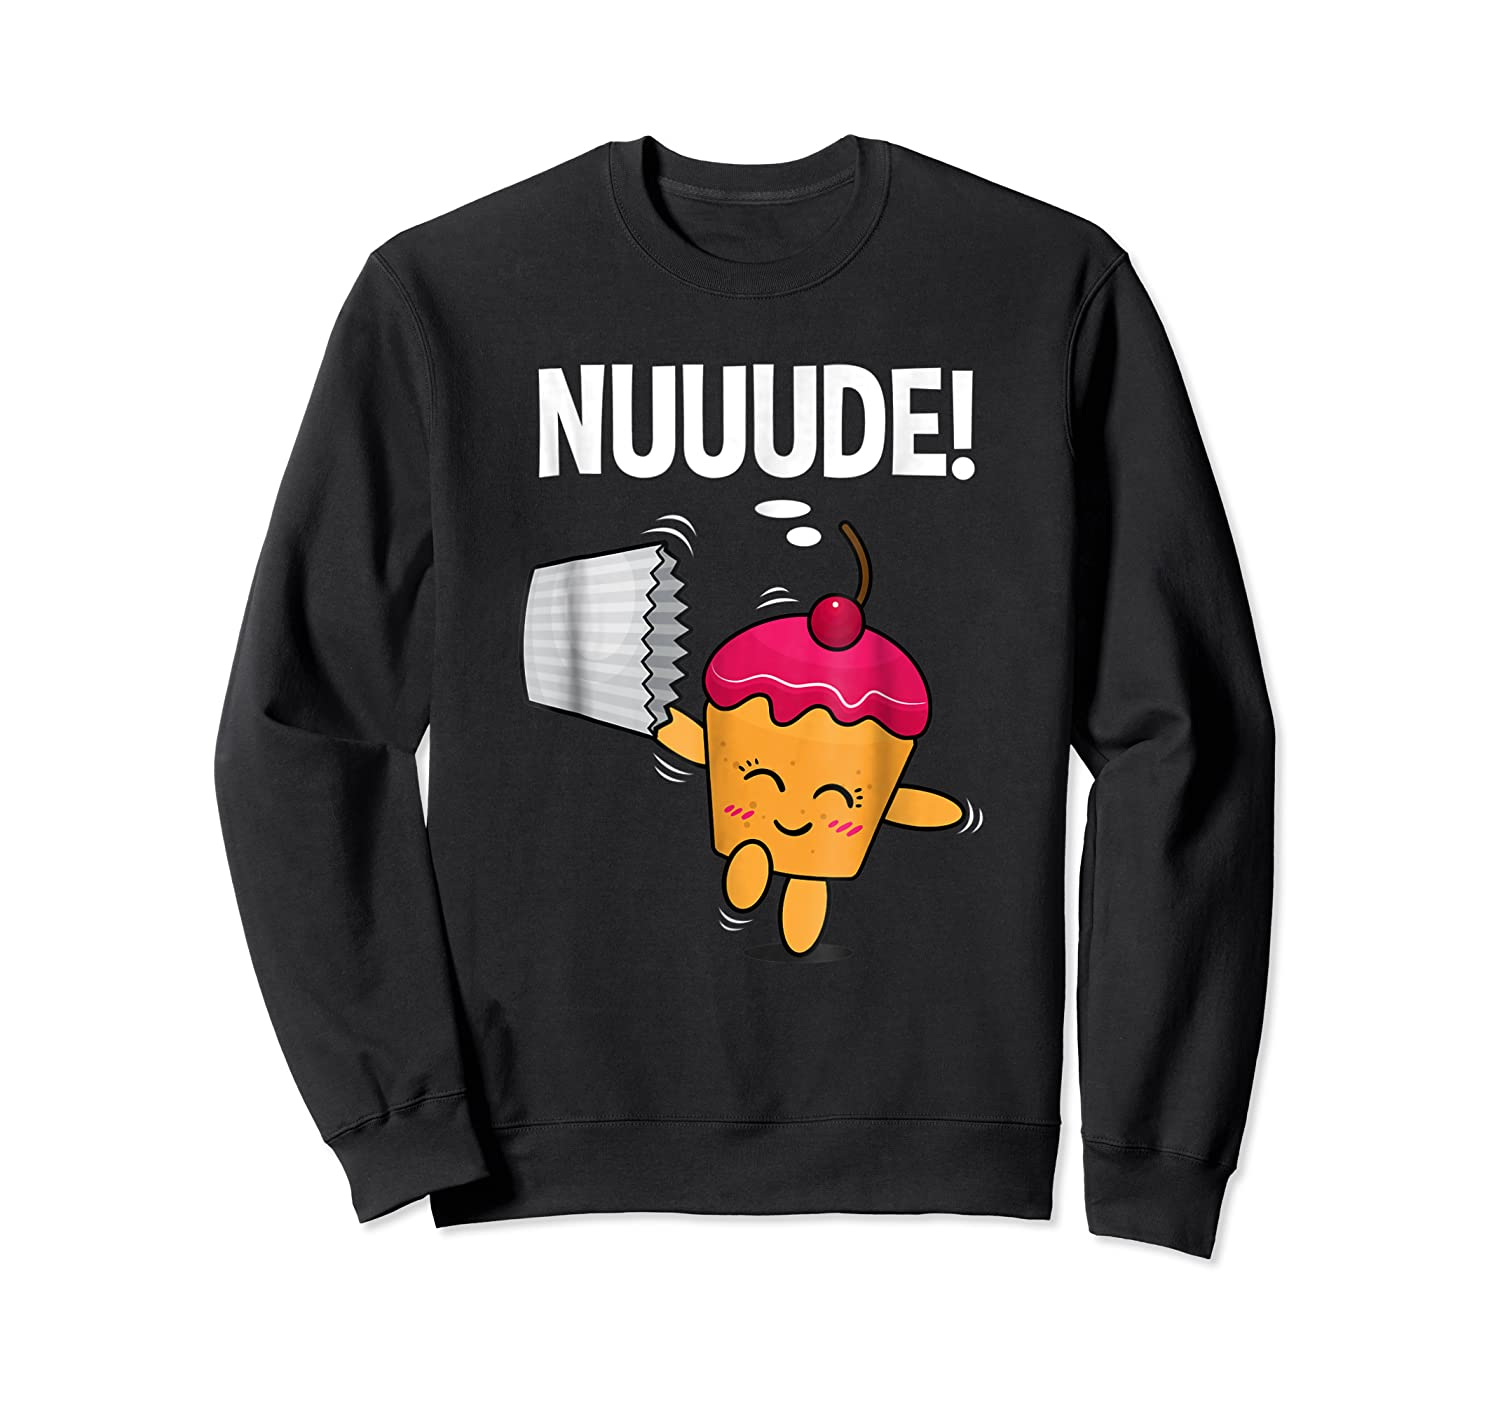 What Do You Call A Cupcake Without It S Wrapper Nude Shirts Crewneck Sweater